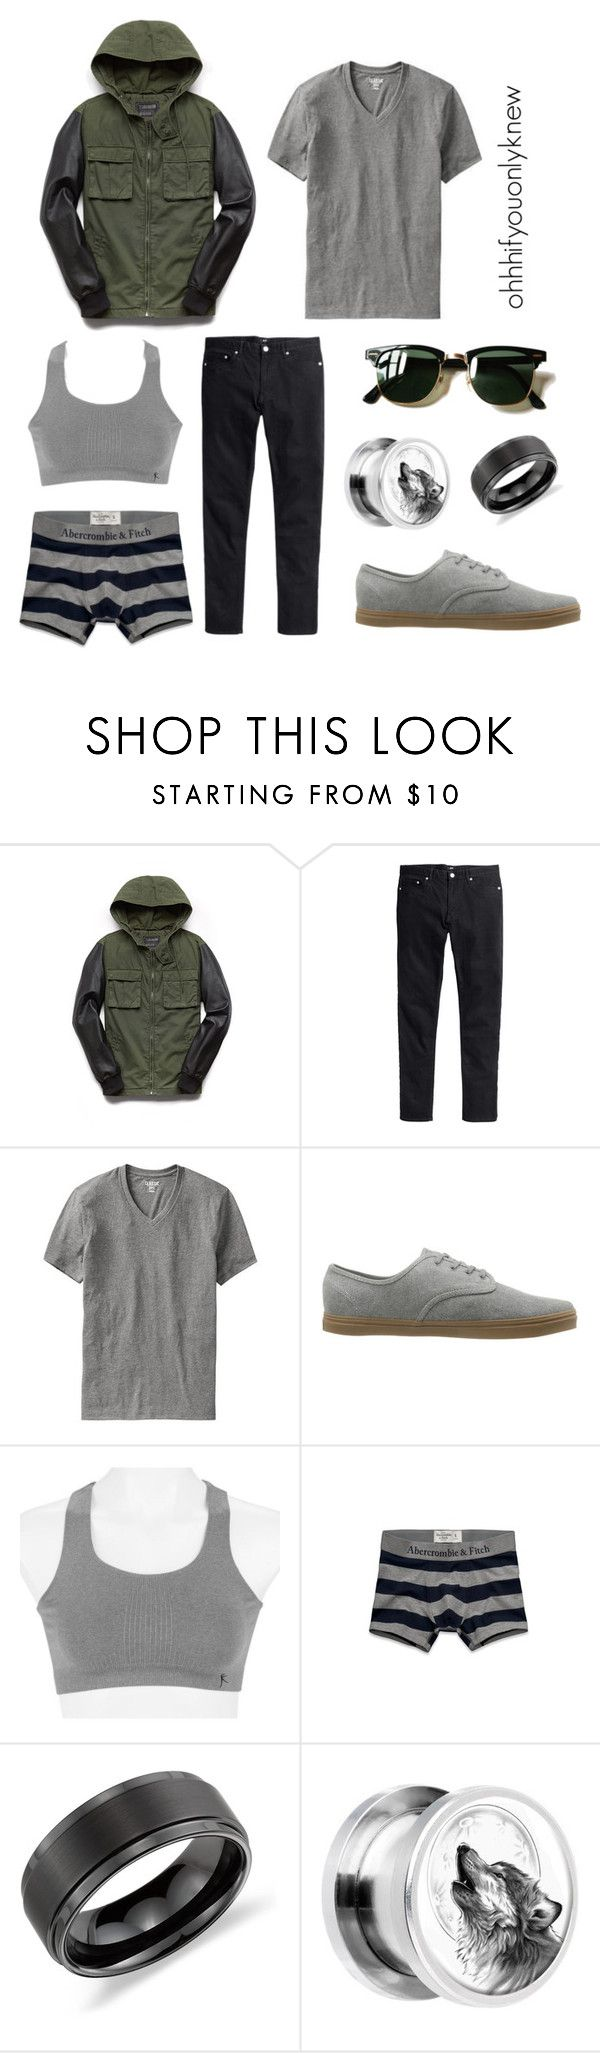 """Untitled #226"" by ohhhifyouonlyknew ❤ liked on Polyvore featuring 21 Men, H&M, Old Navy, Vans, Danskin, Abercrombie & Fitch, Ray-Ban and Blue Nile"